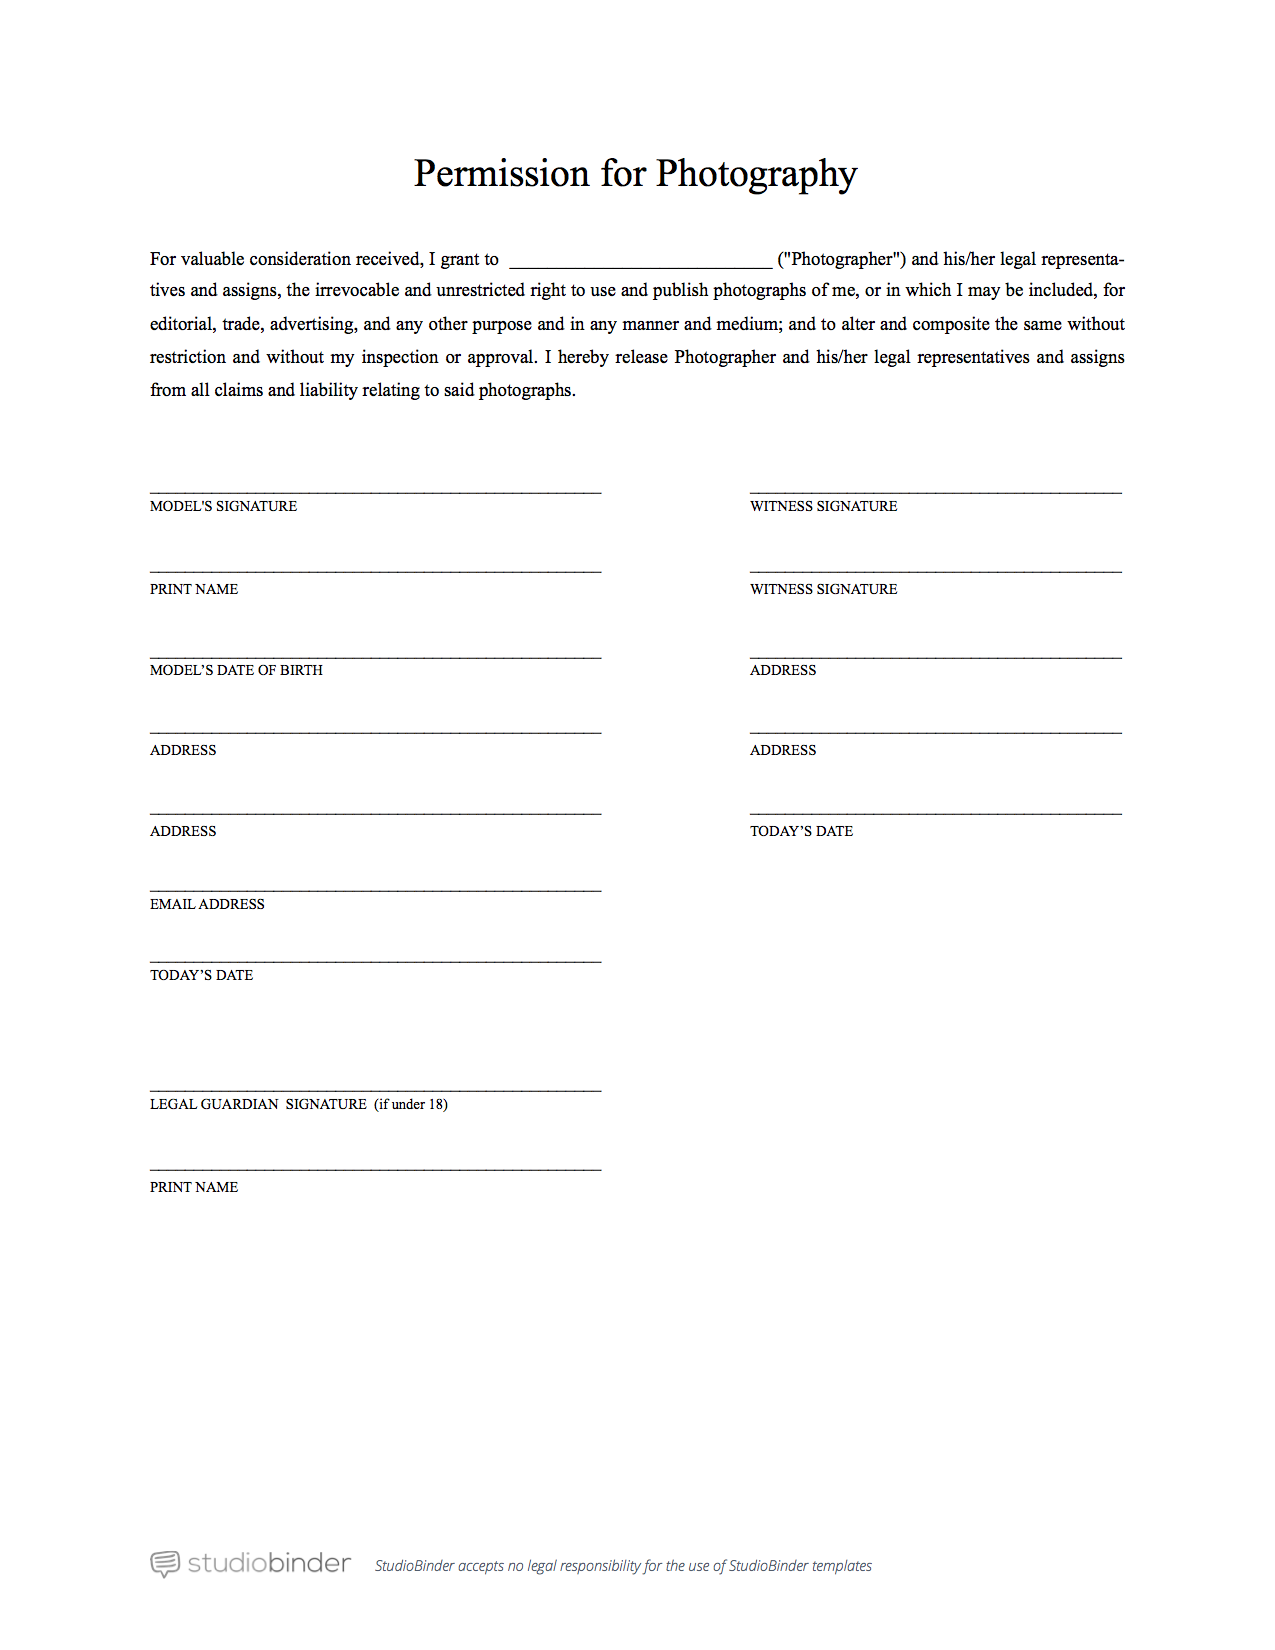 Simplified Model Release Form This simple model release form is a ...